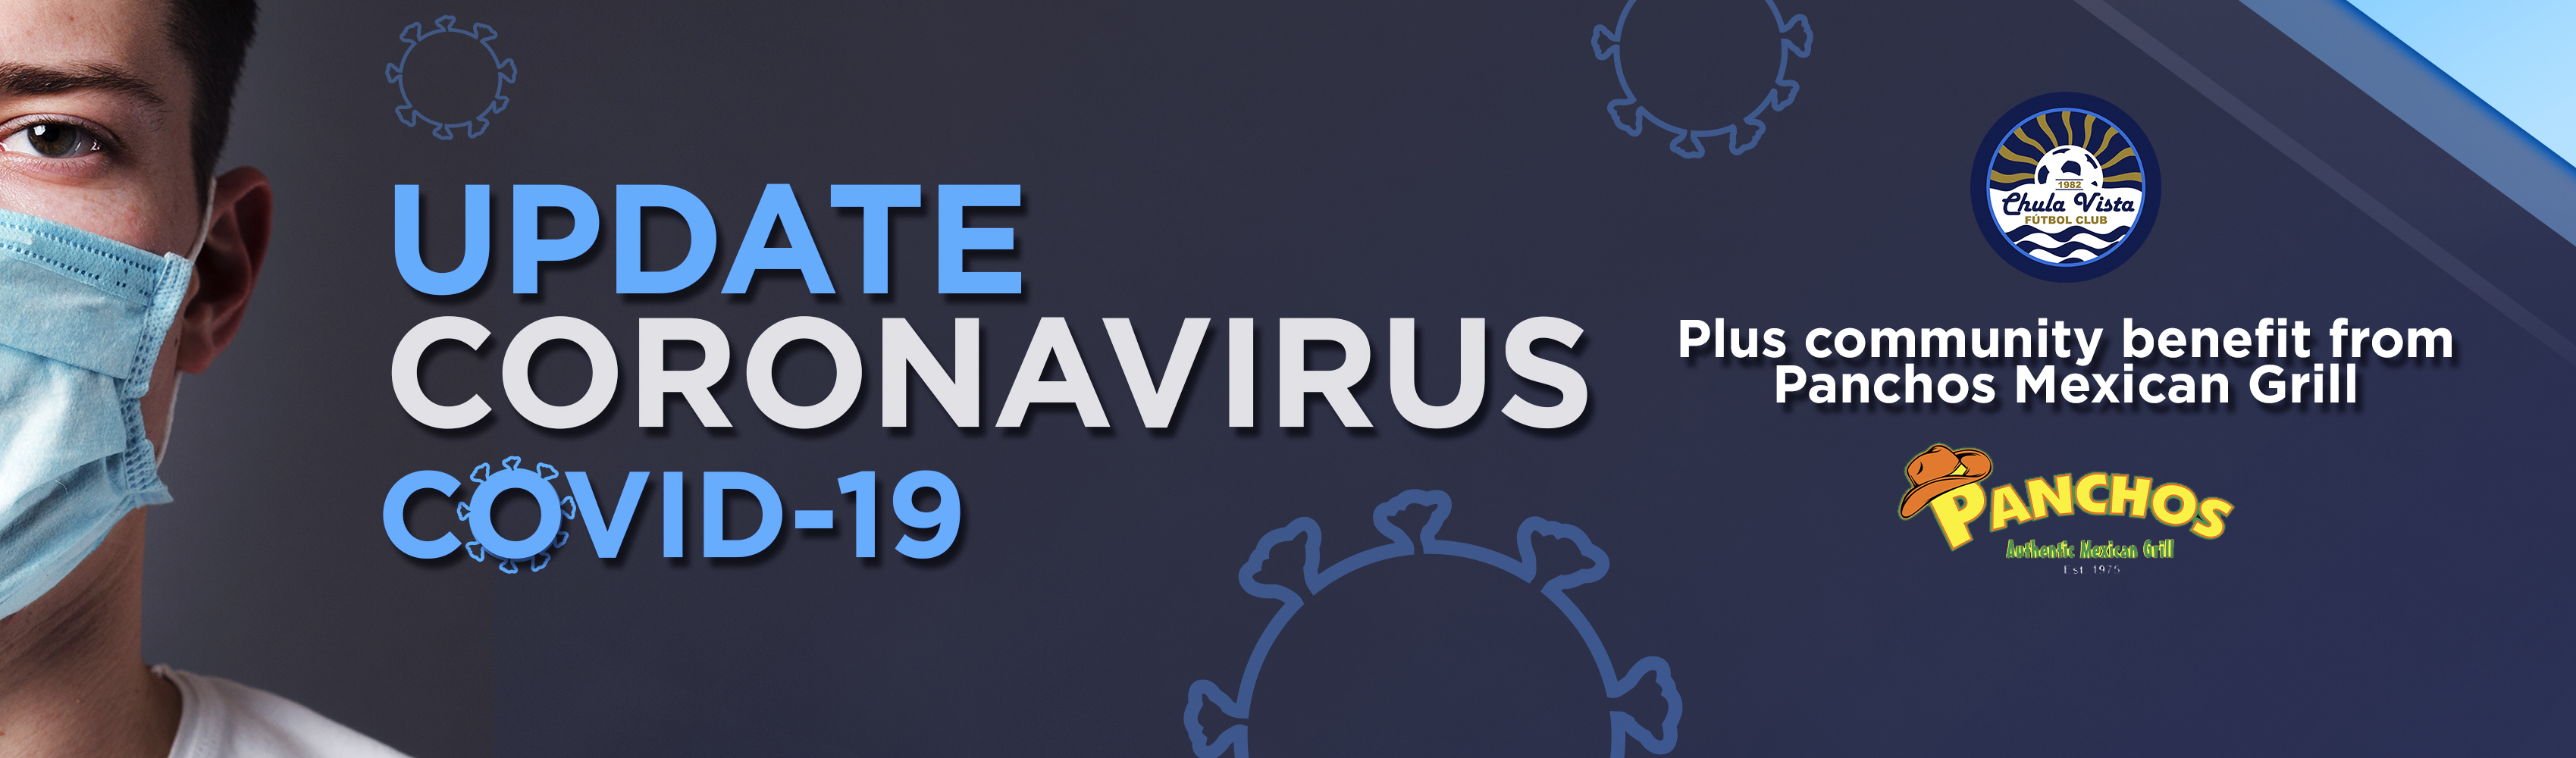 CLUB UPDATE on Coronavirus [COVID-19)